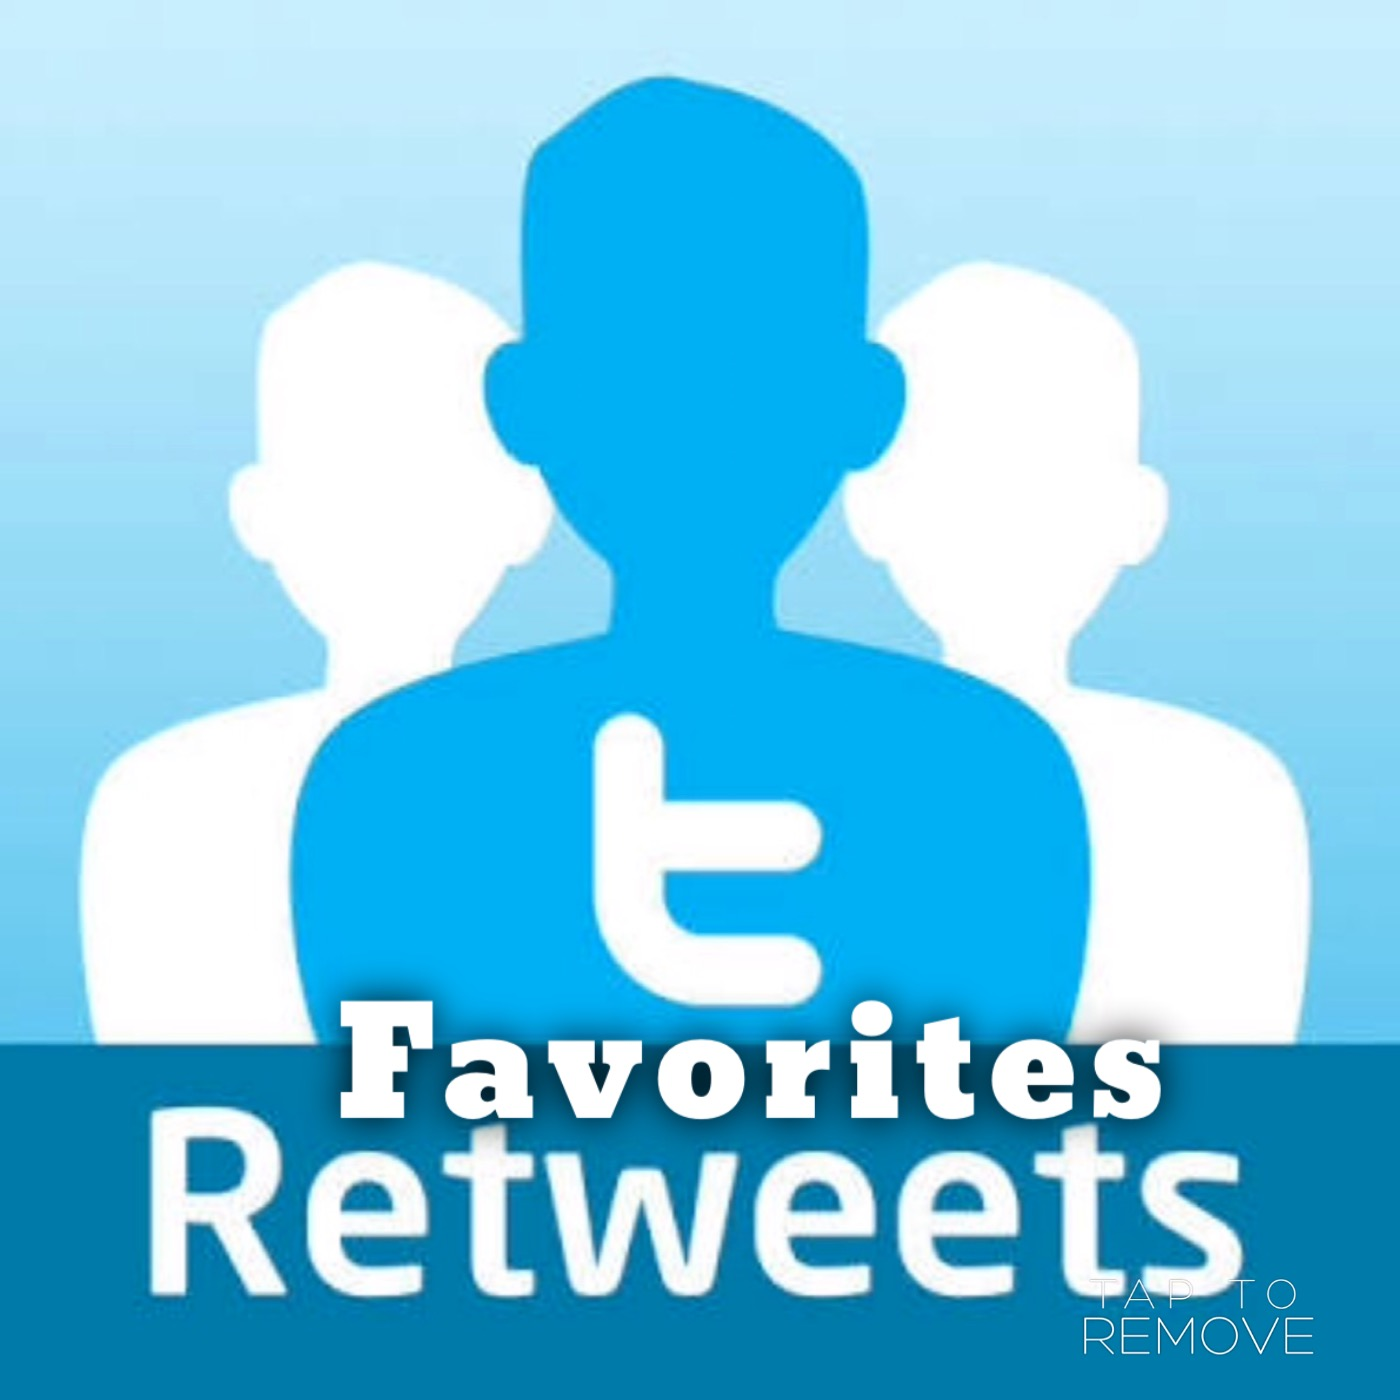 Provide 1500 Twitter retweets and 1500 favorite